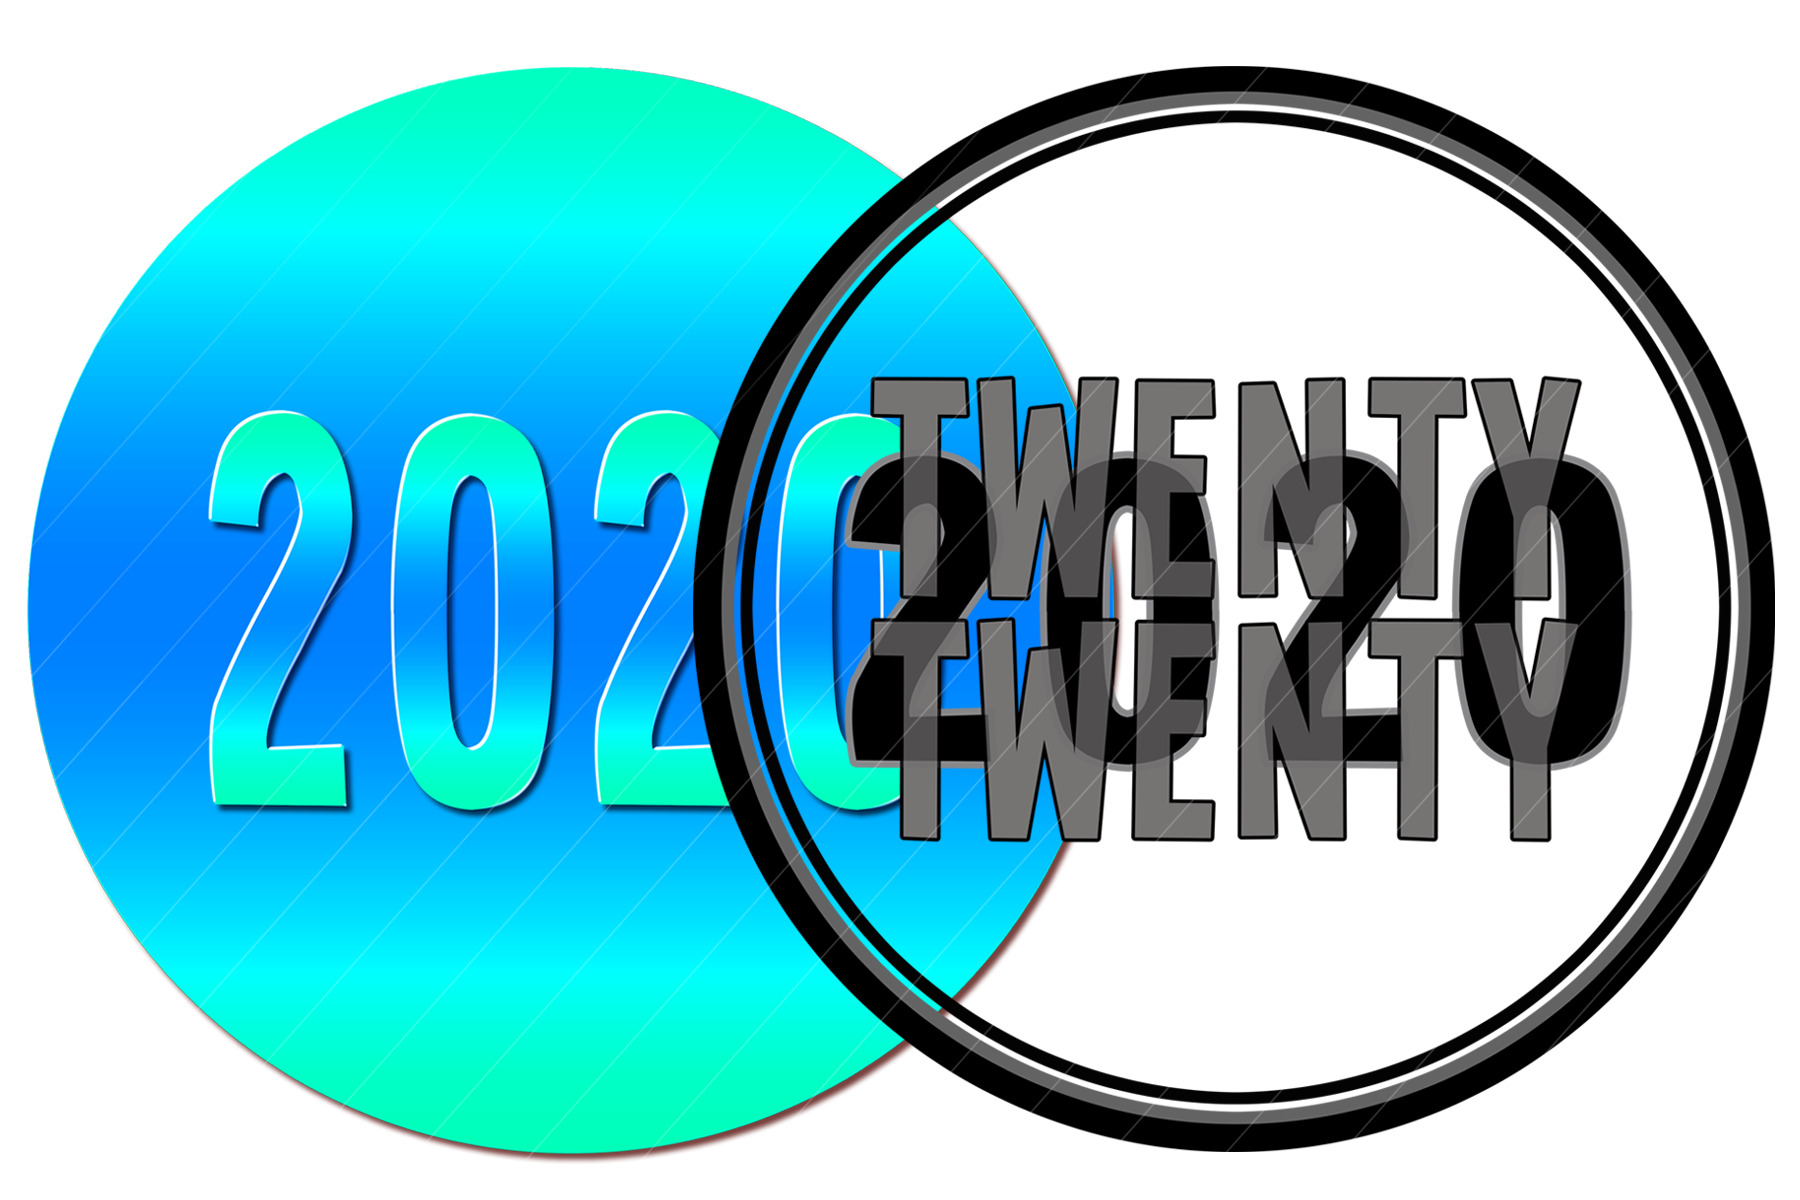 2020 New Year Designs for PRINTING, High Resolution example image 8